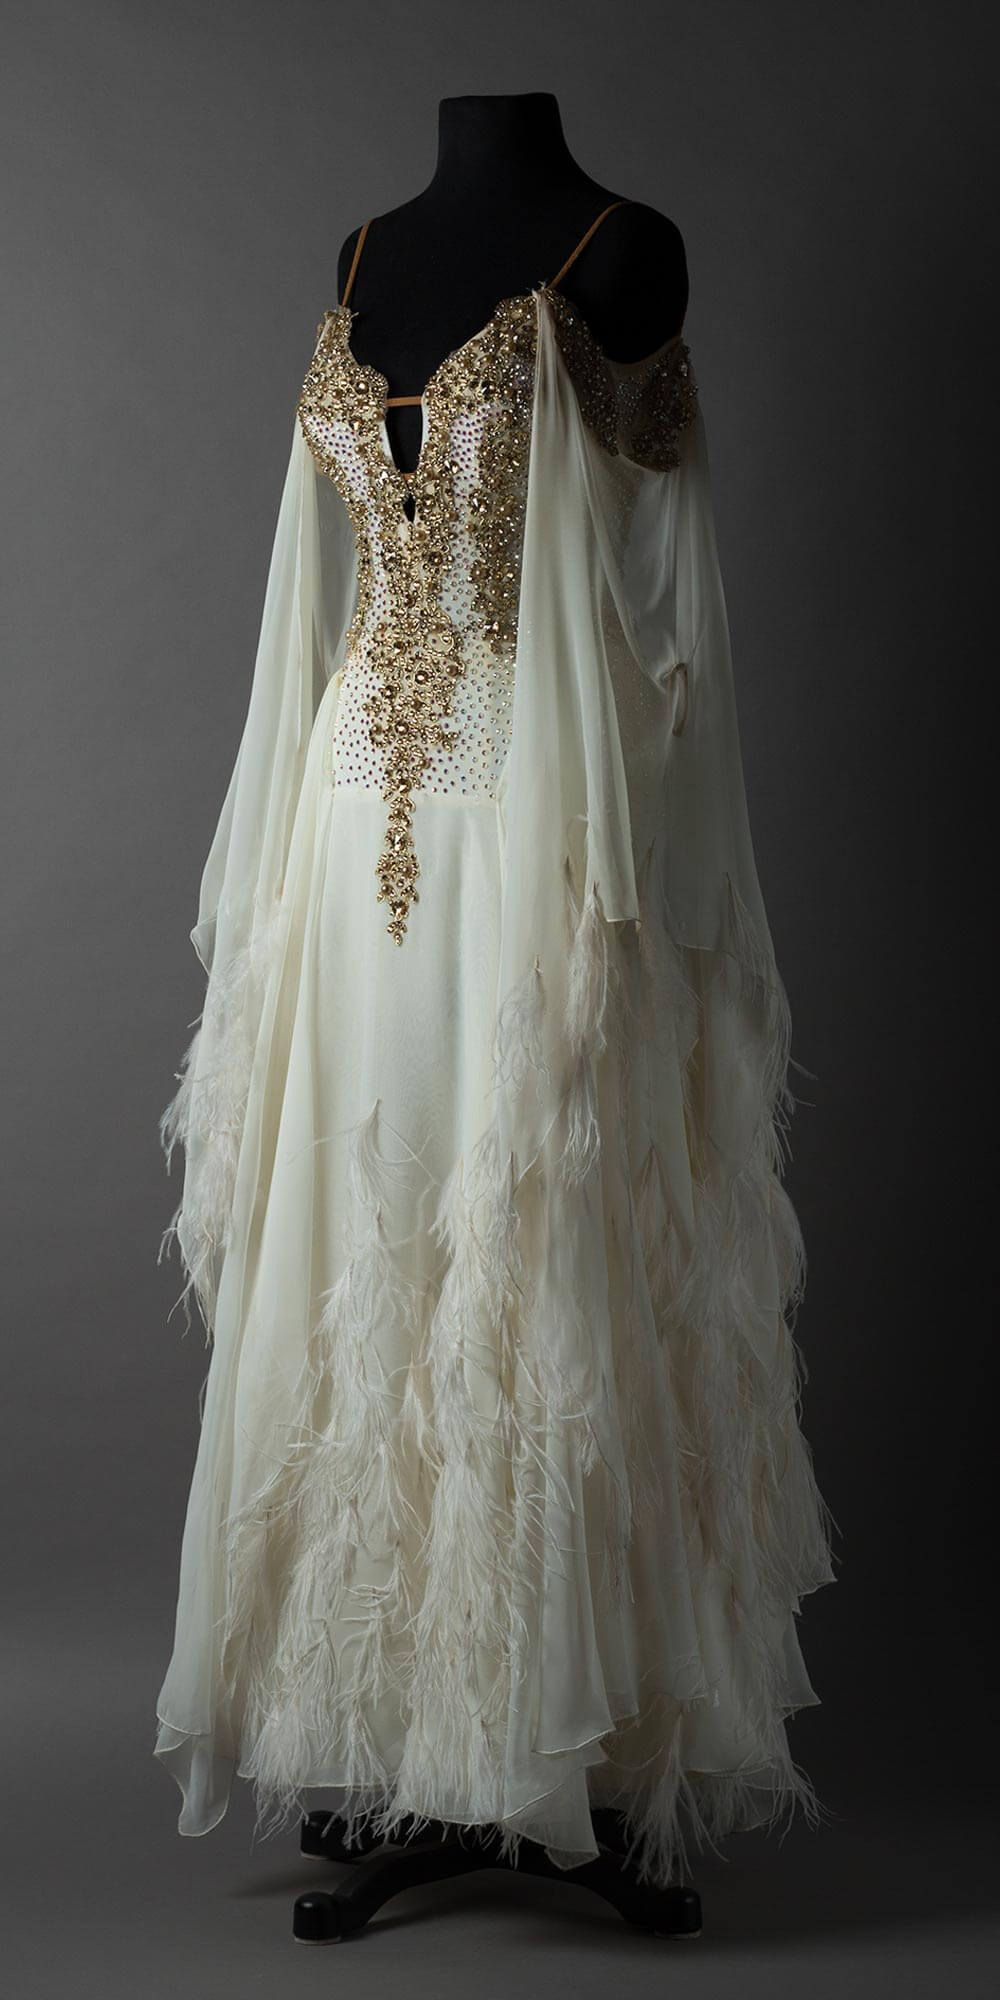 French vanilla chiffon standard with gold lace and wispy feathers #promthings